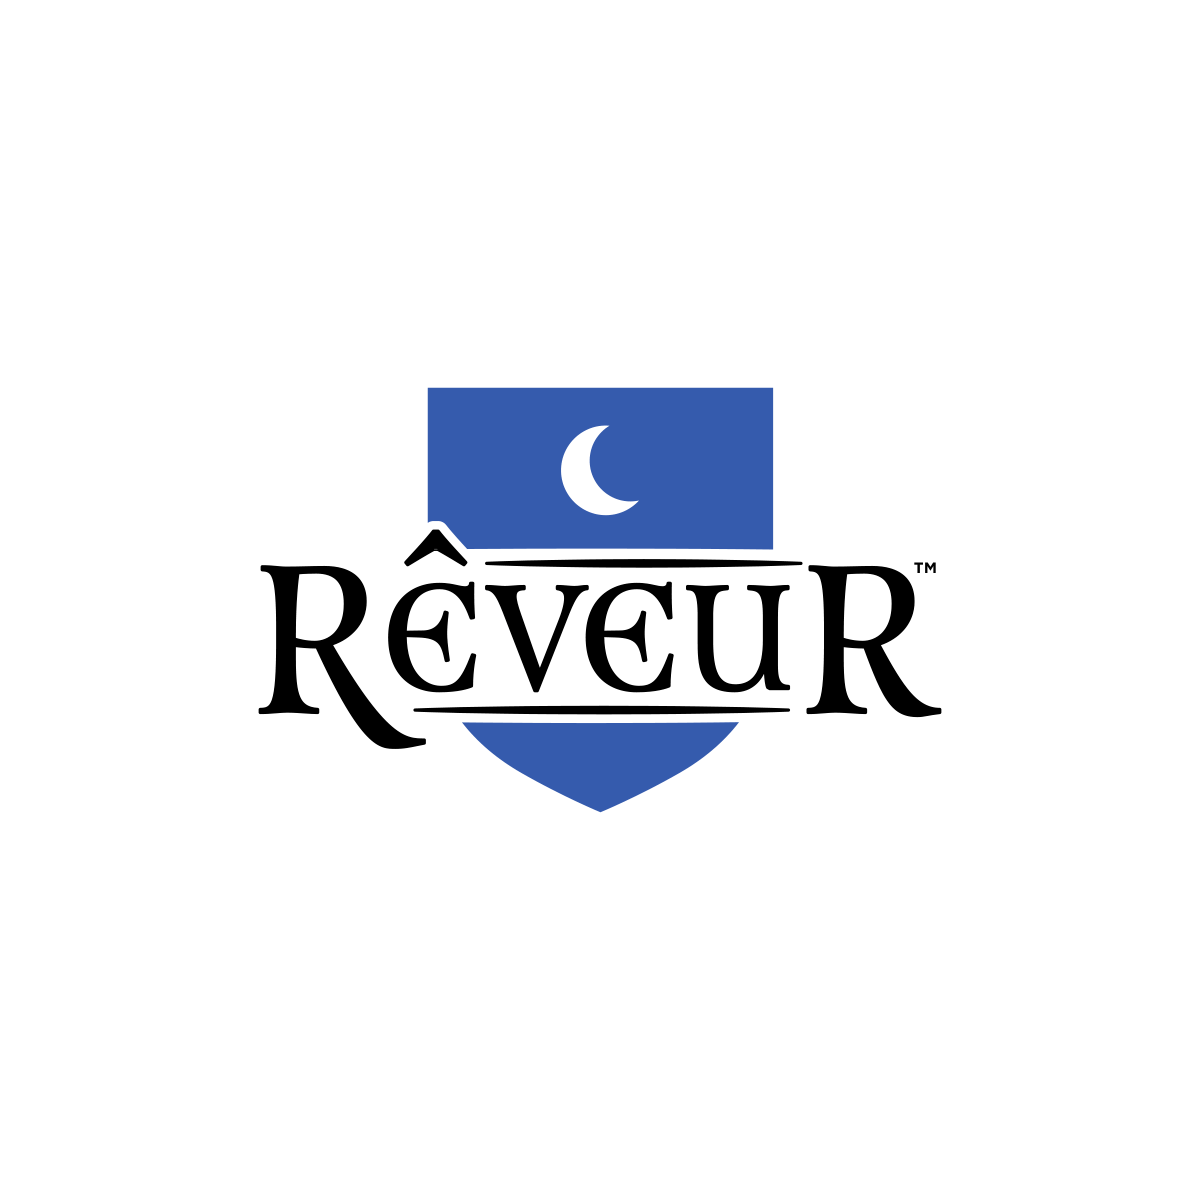 Secondary Logo - For limited color use, low detail printing, or small placement. Comes in blue with black or white text.↓ Download EPS   ↓ Download PNG